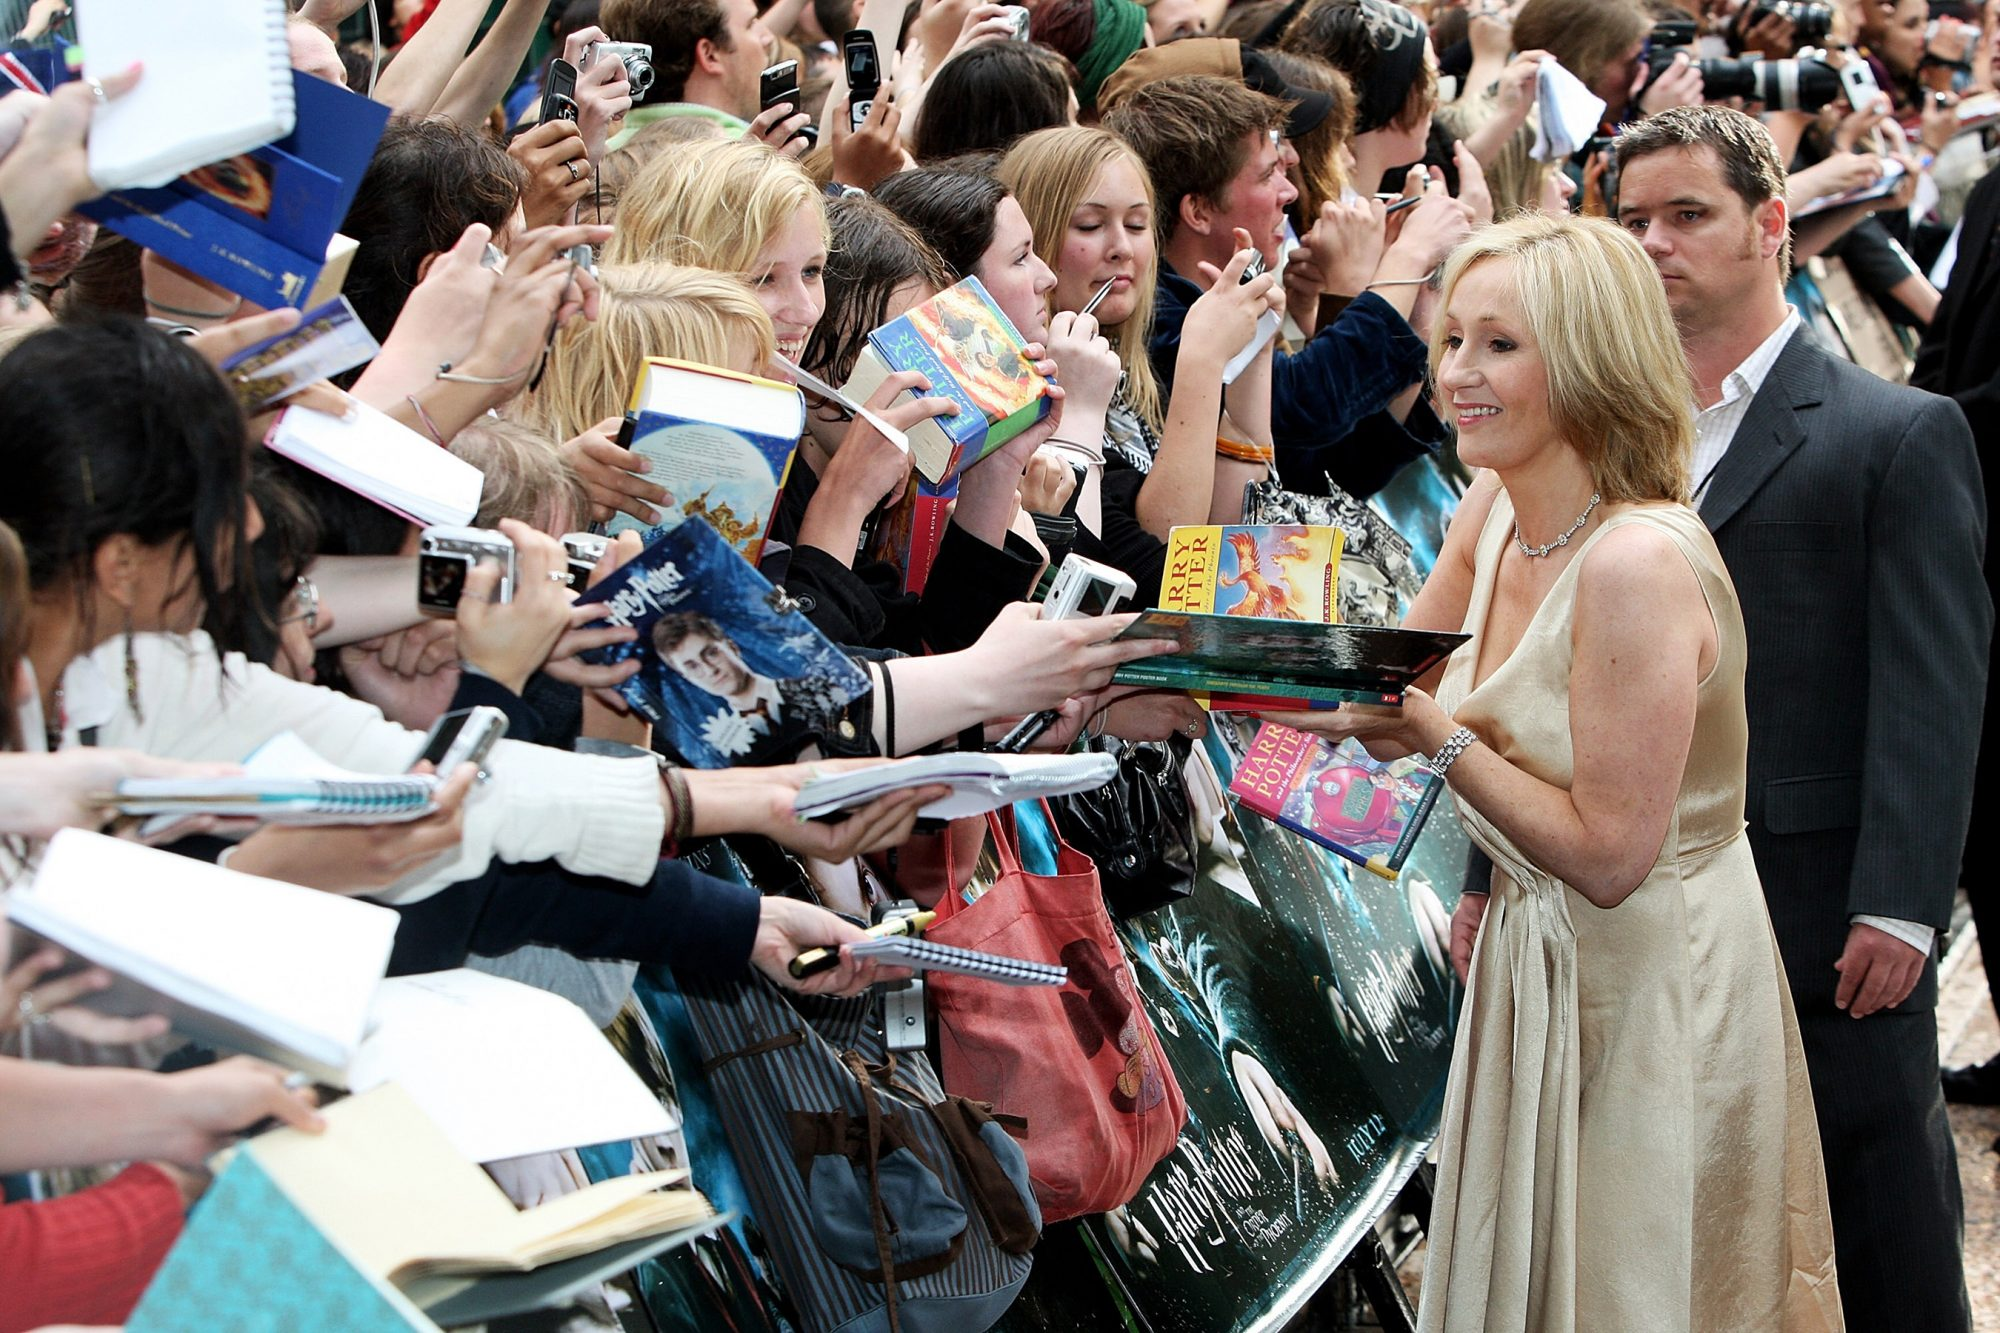 Harry Potter And The Order Of The Phoenix - Arrivals